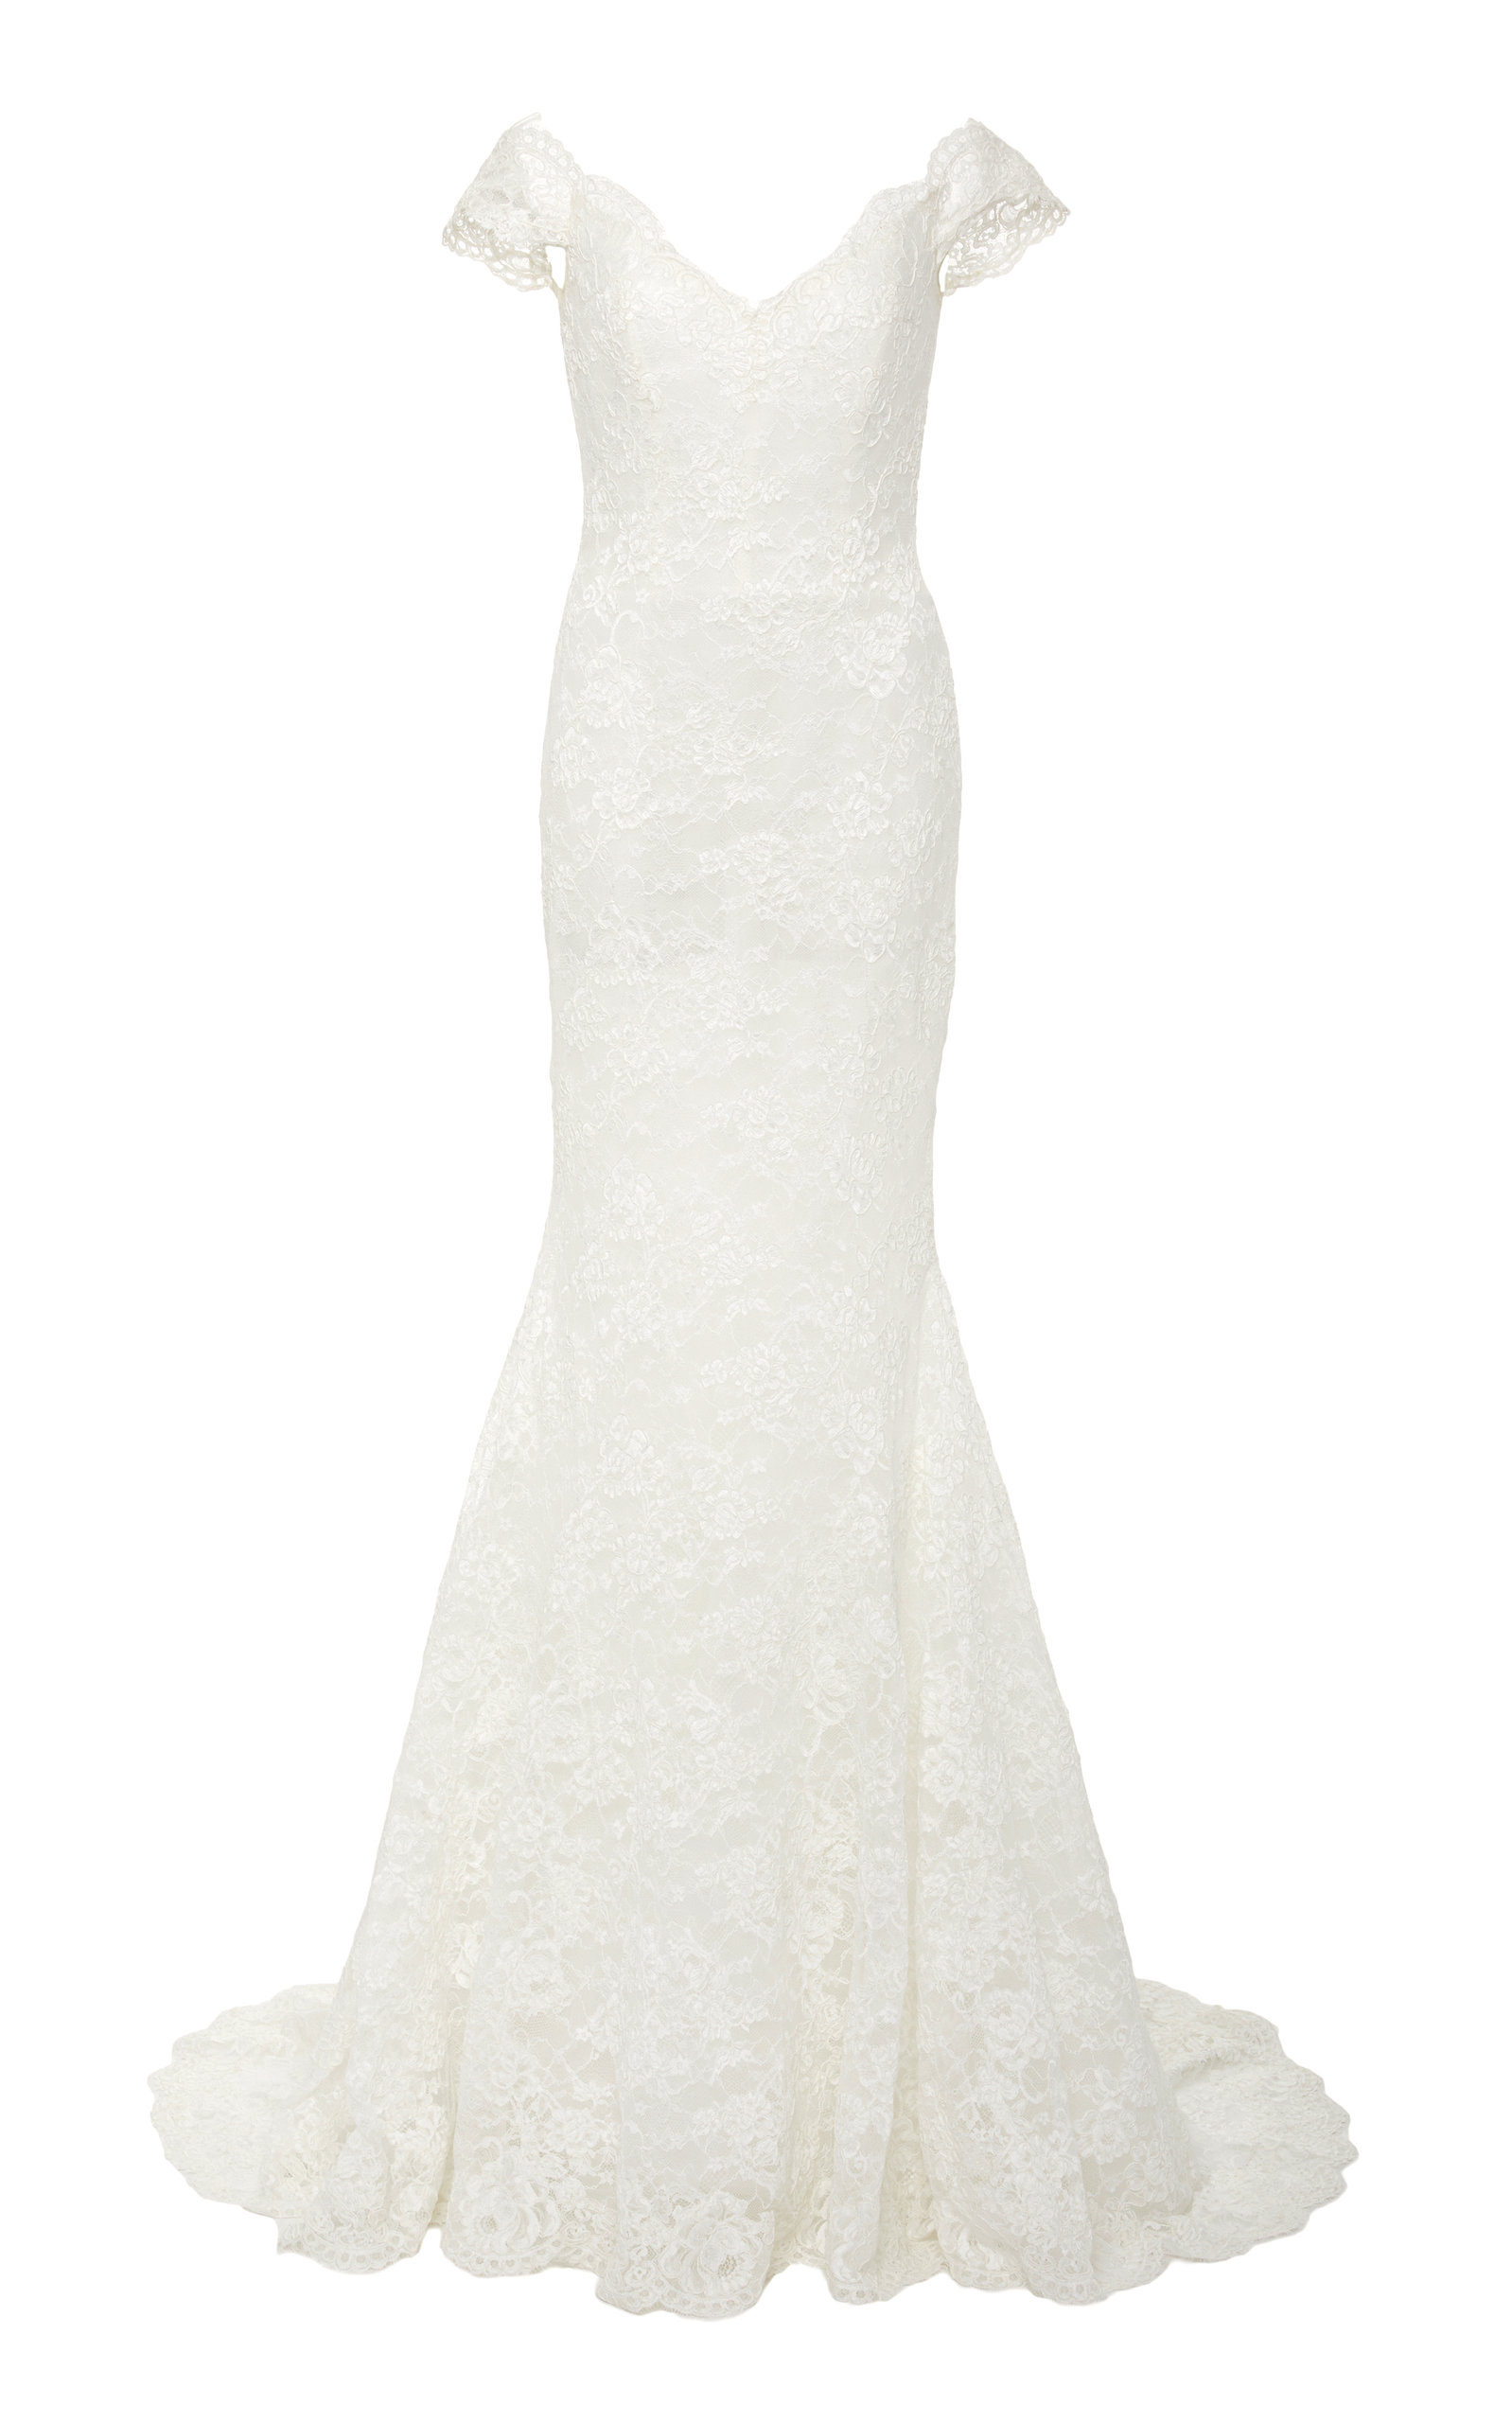 ISABELLE ARMSTRONG Delilah Off-The-Shoulder Lace Mermaid Gown in White